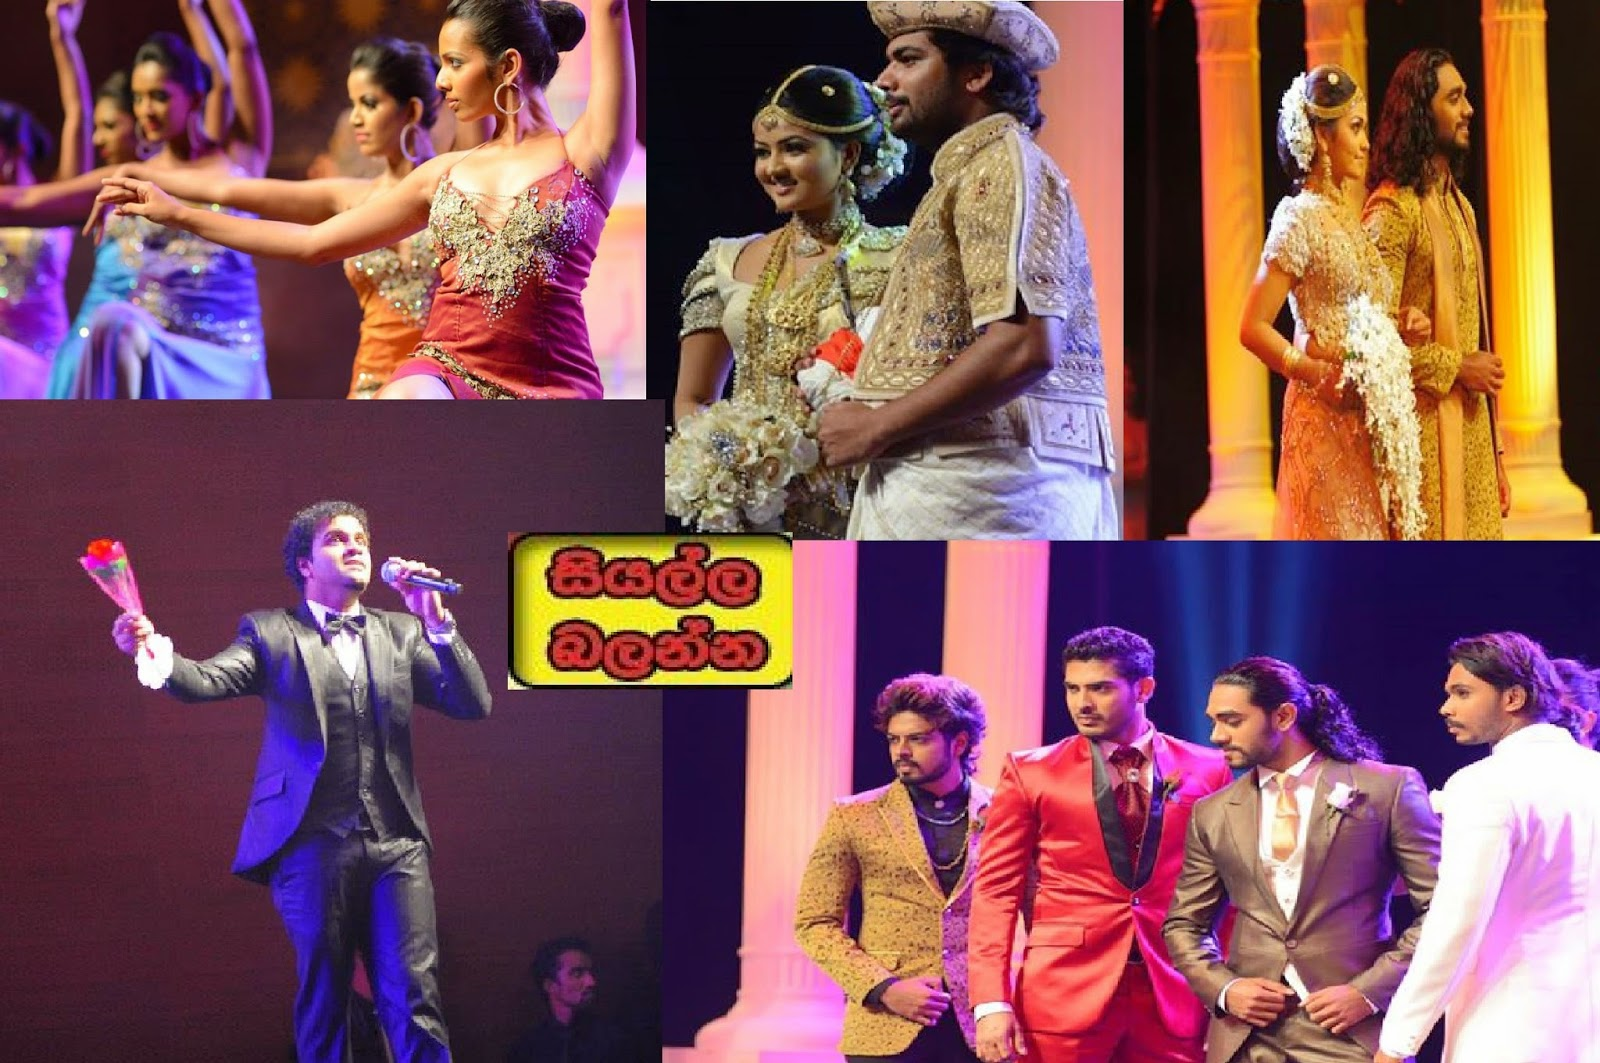 http://picture.gossiplankahotnews.com/2014/11/wedding-way-grand-show-at-nelum-pokuna.html